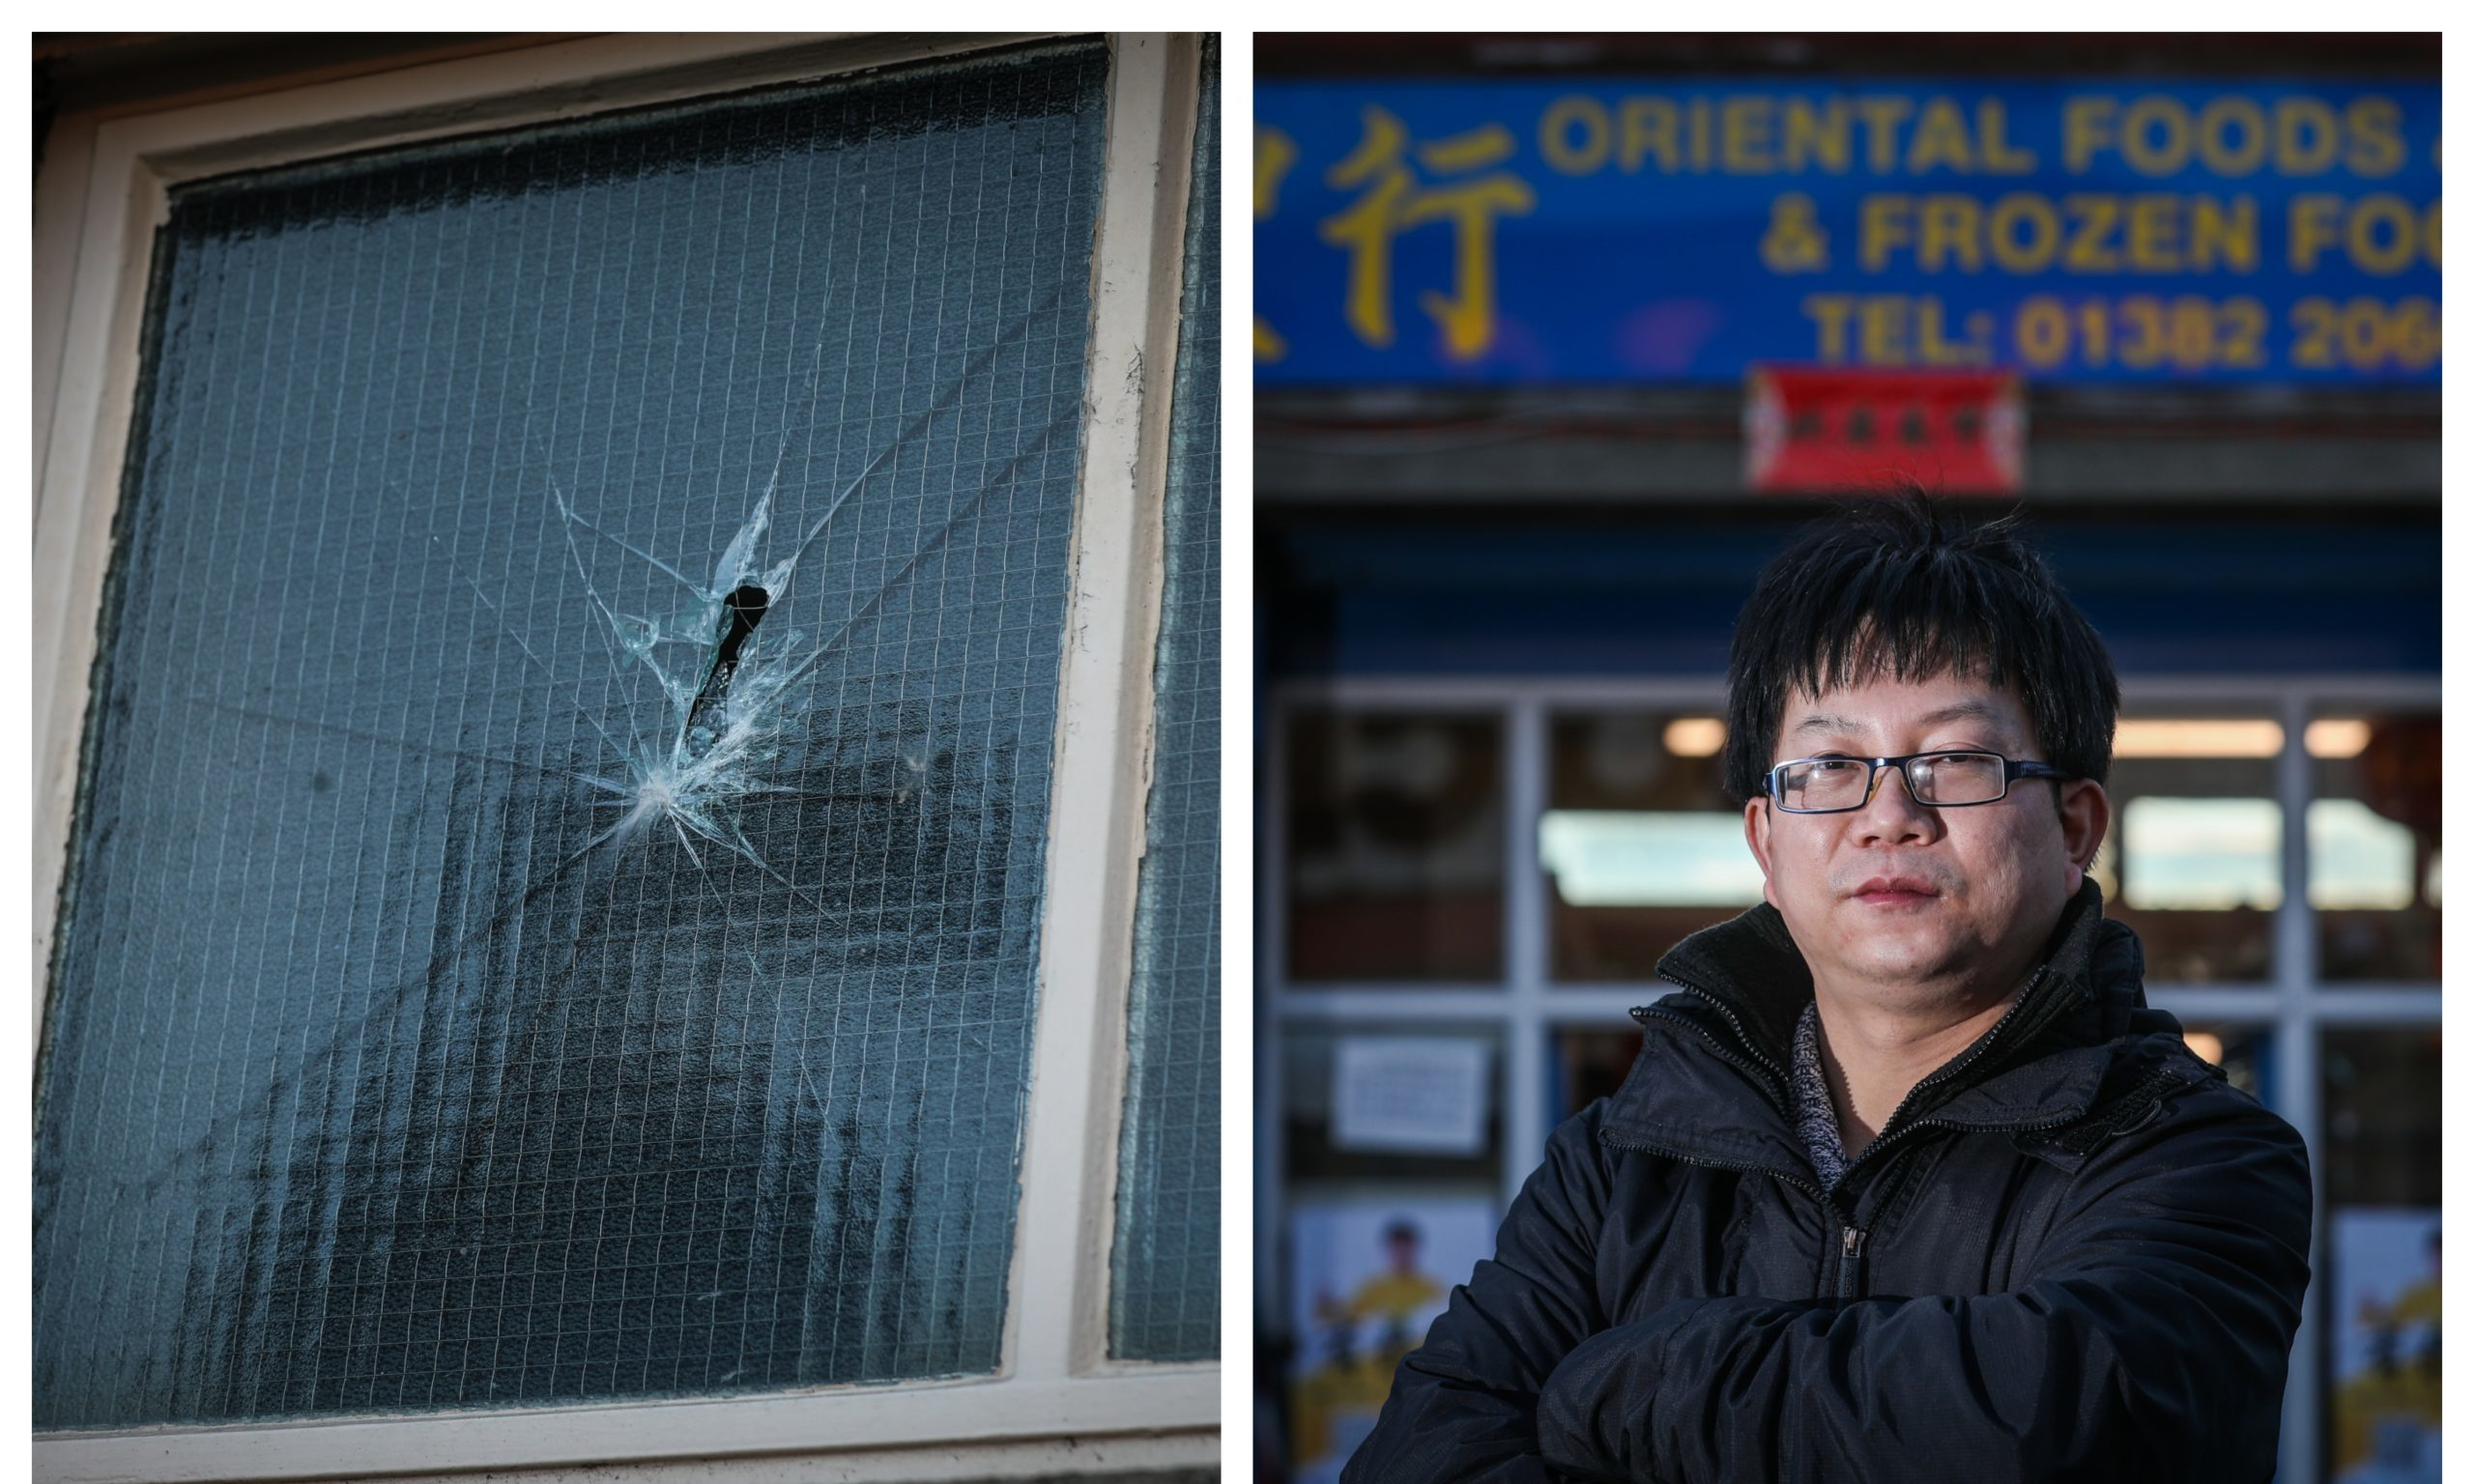 Bryan Chen and one of the vandalised windows